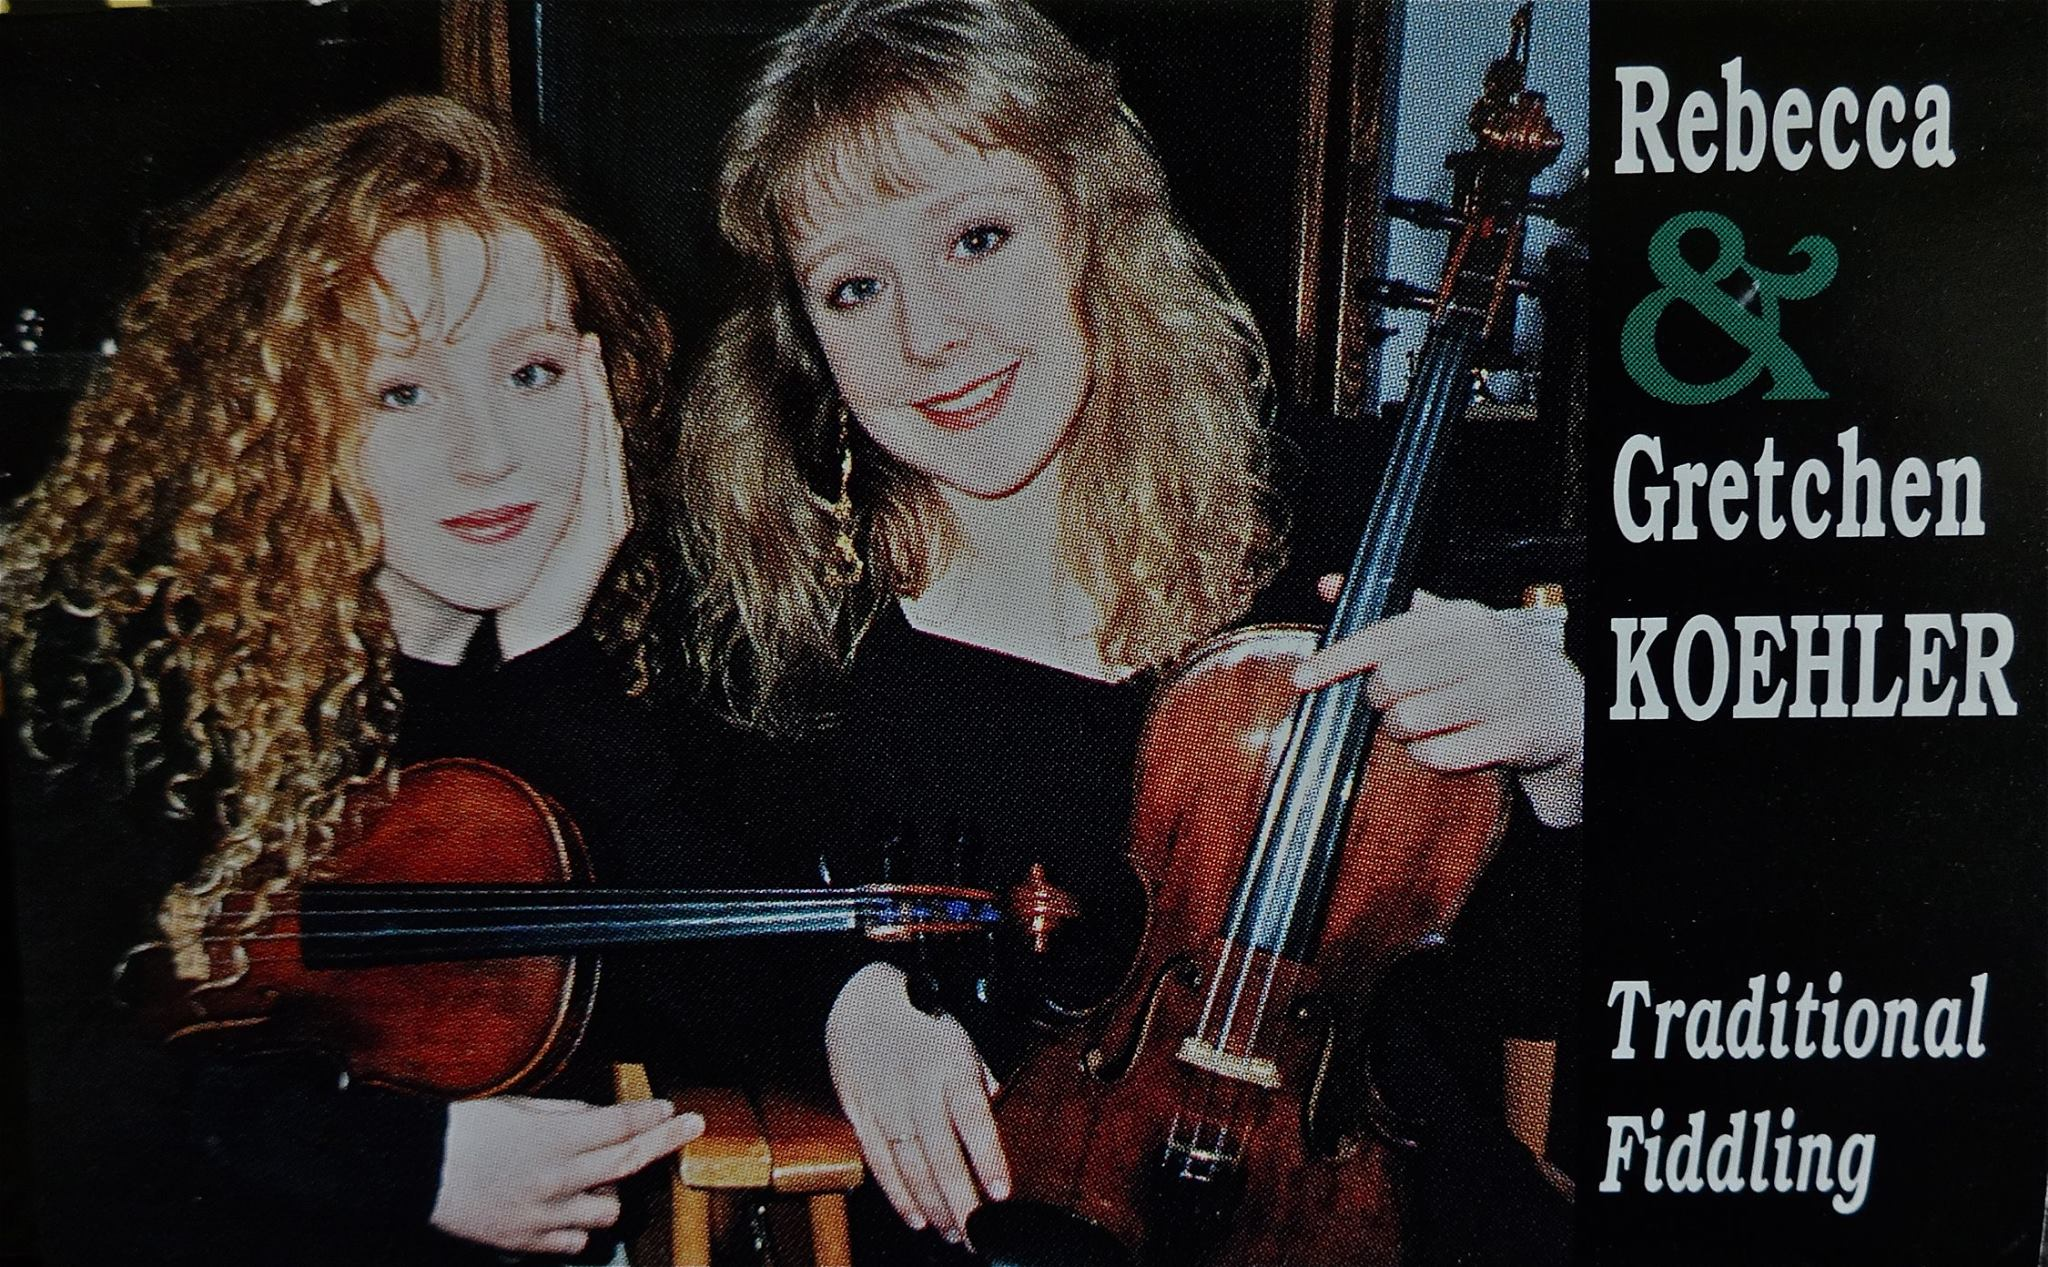 TRADITIONAL FIDDLING - The Koehler Sisters have a